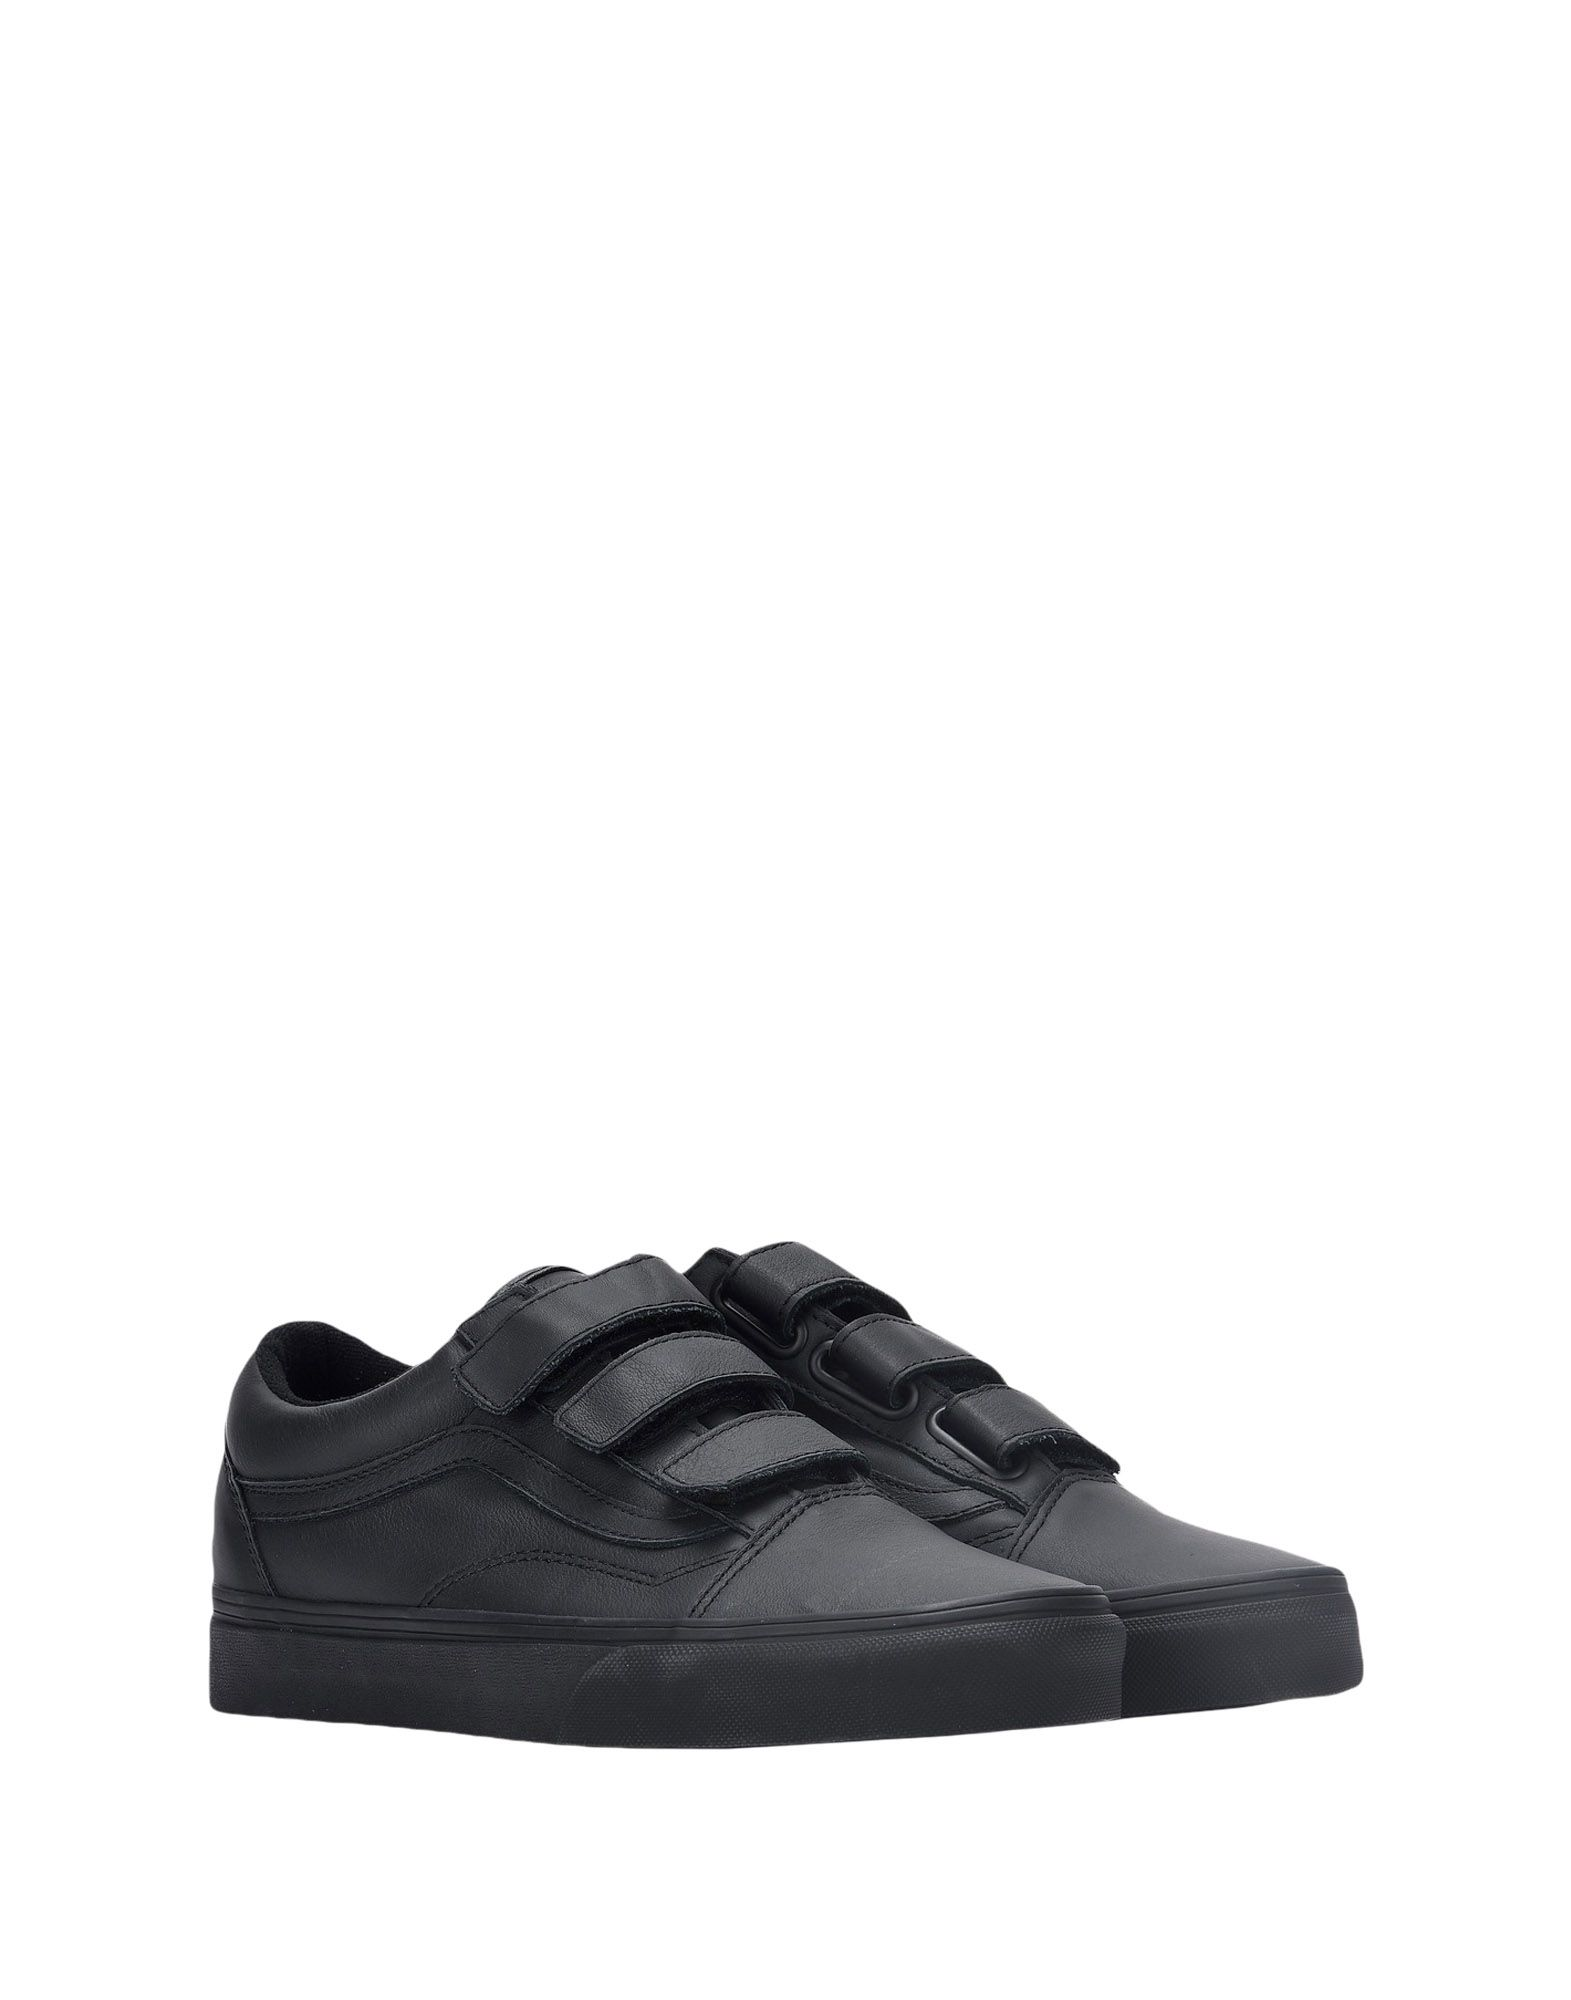 Vans Vans Vans Ua Old Skool V - Sneakers - Men Vans Sneakers online on  United Kingdom - 11338510TX 6d2003